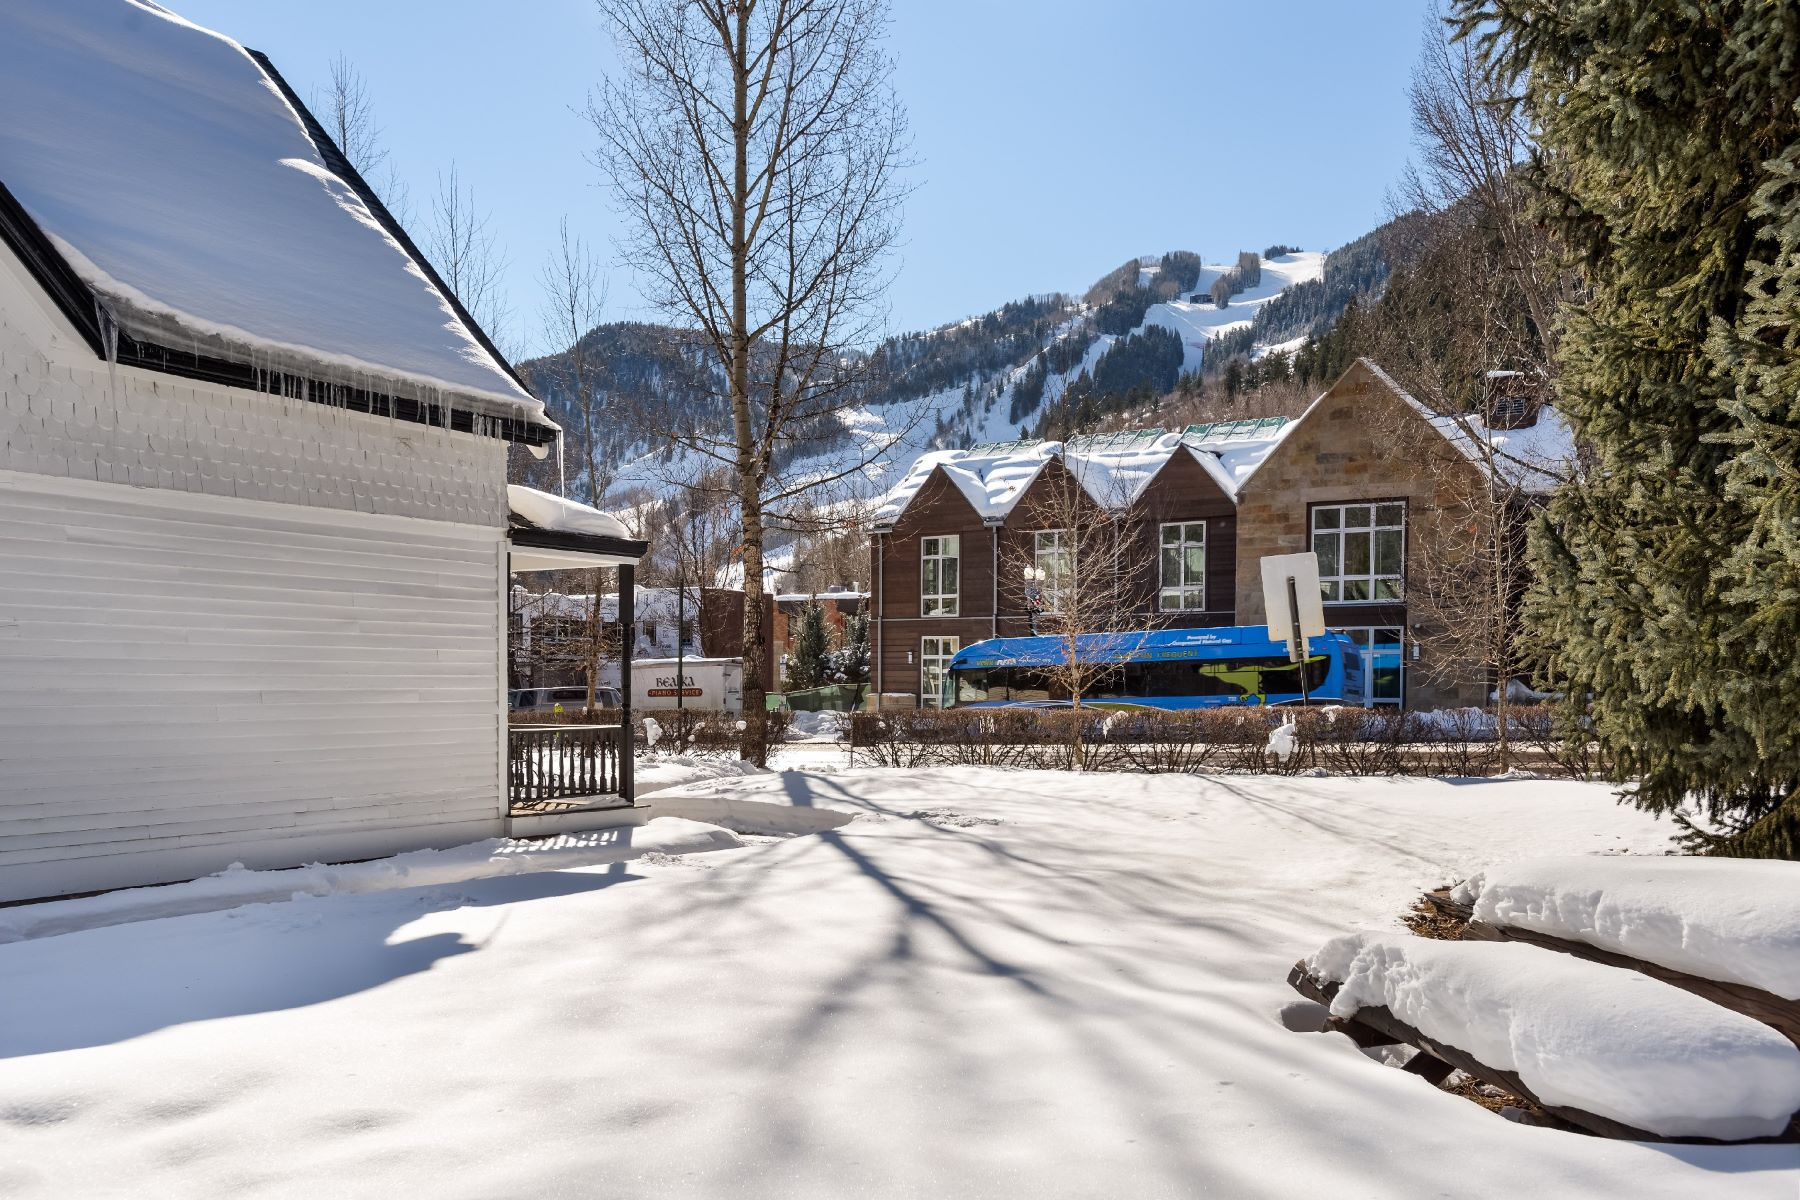 Additional photo for property listing at 430 West Main Street 430 W Main Street Aspen, Colorado 81611 United States